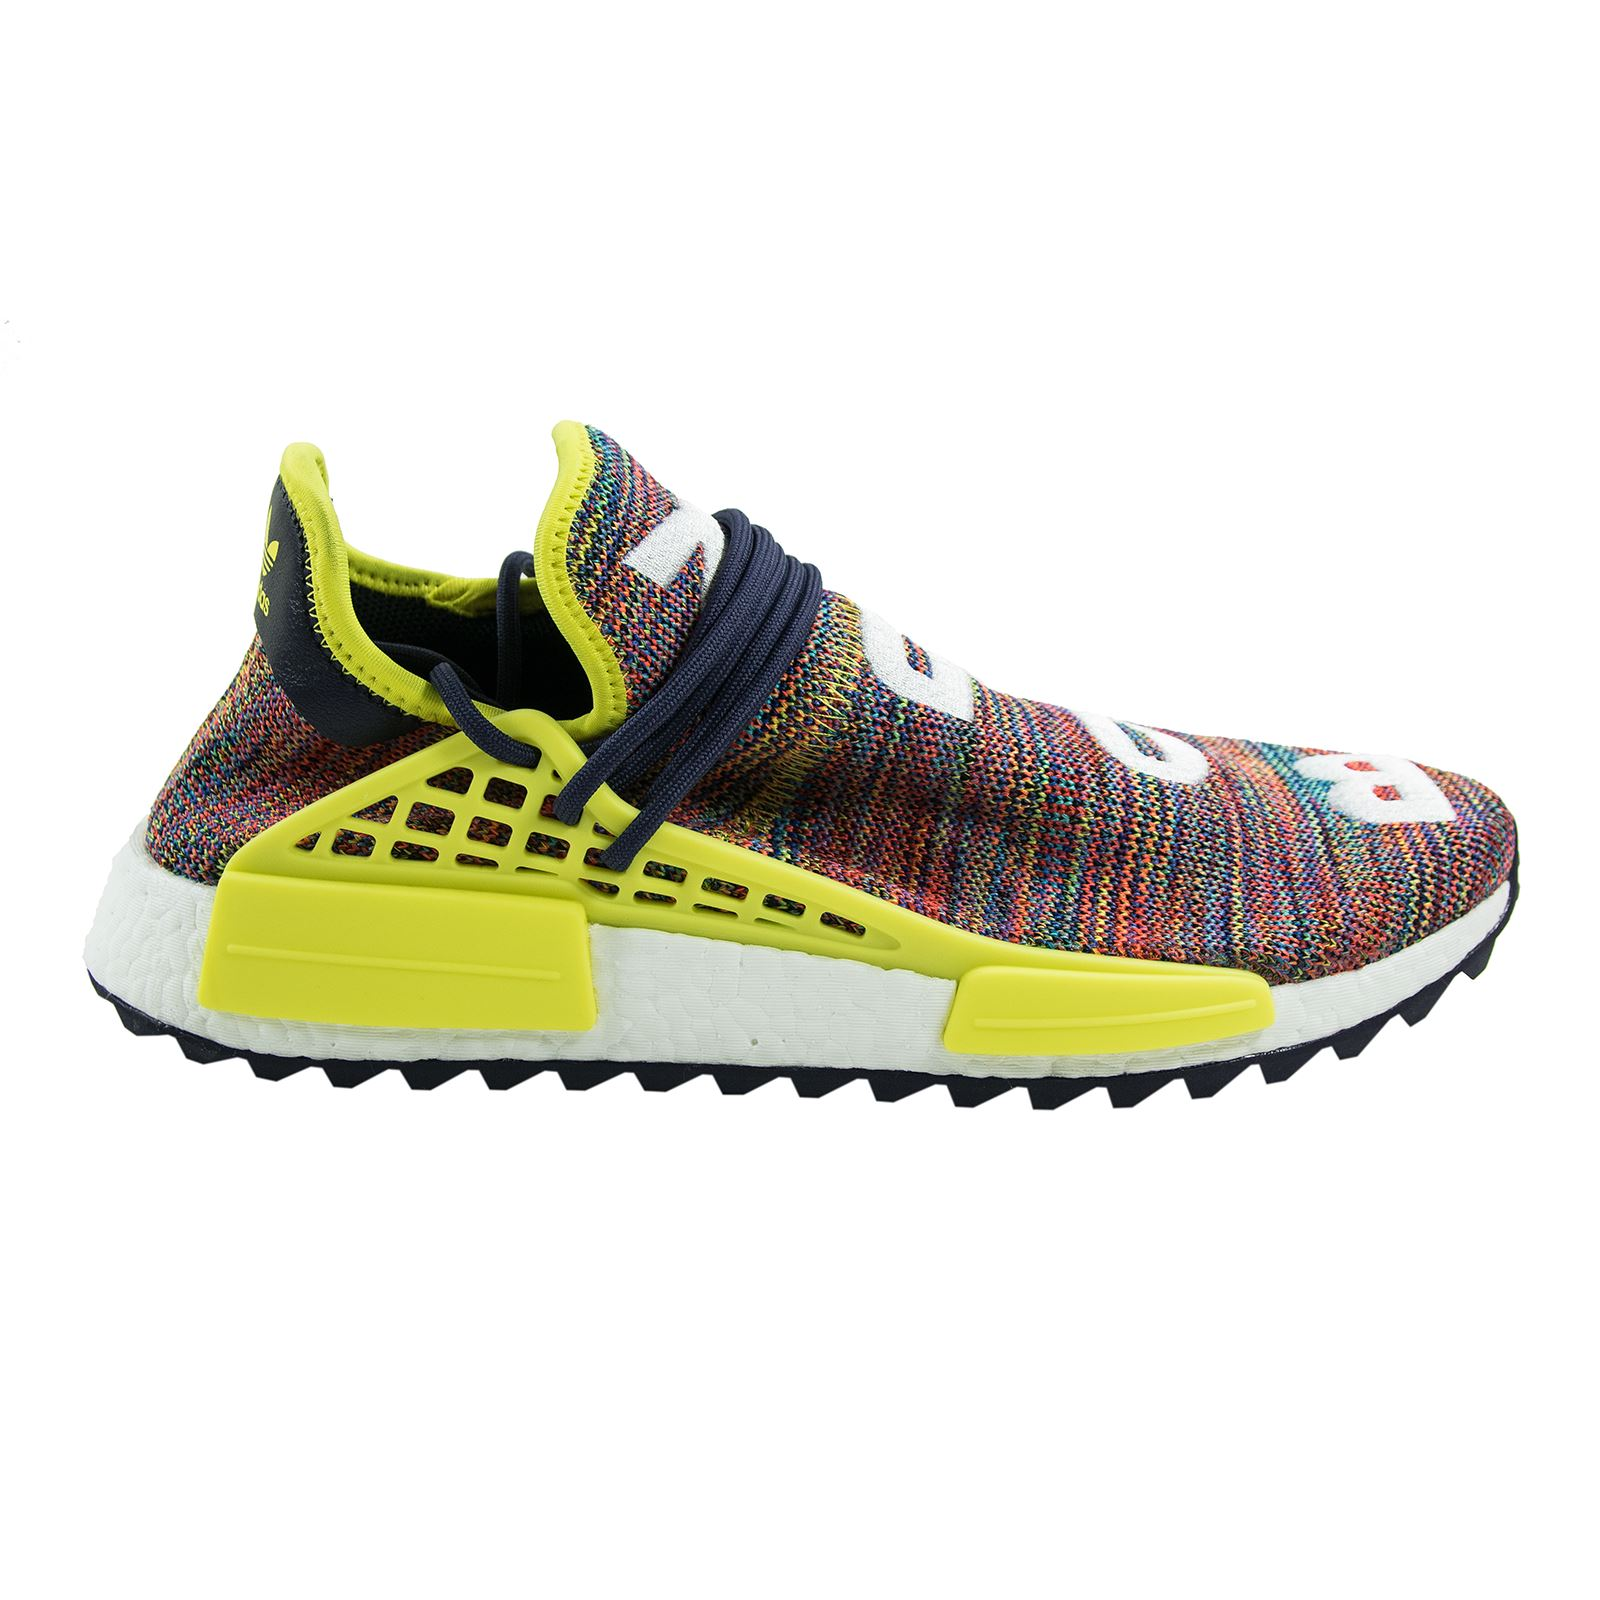 e21568fb6 Details about NIB Adidas Pharrell Williams Human Race NMD TR AC7360  Multi-Color Noble Ink 13